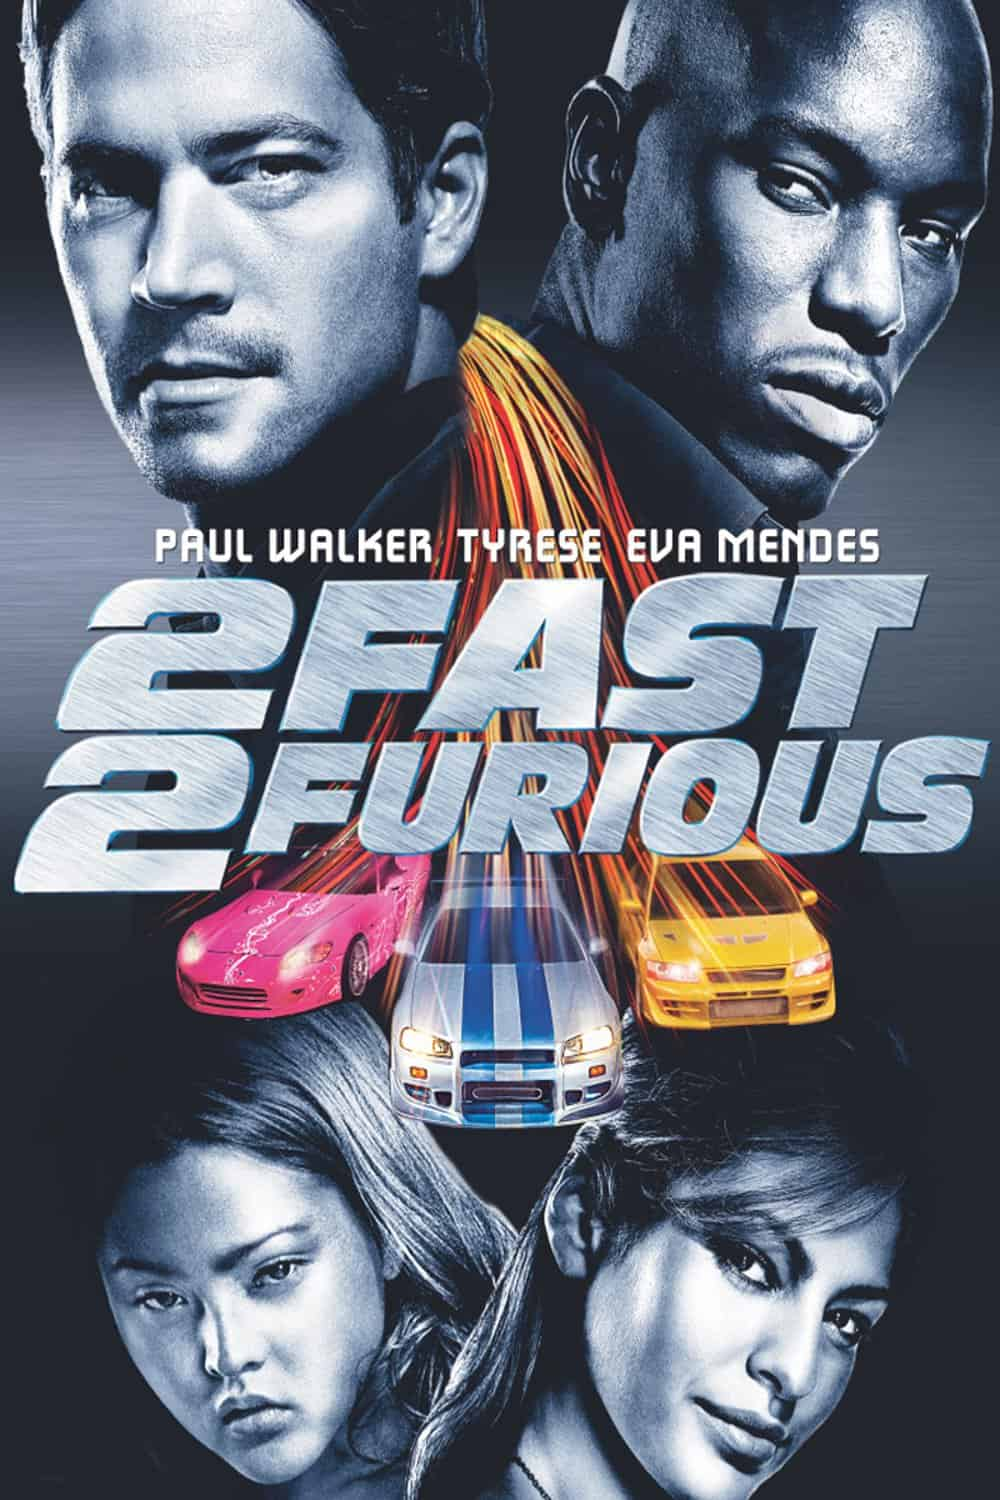 2 Fast 2 Furious, 2003